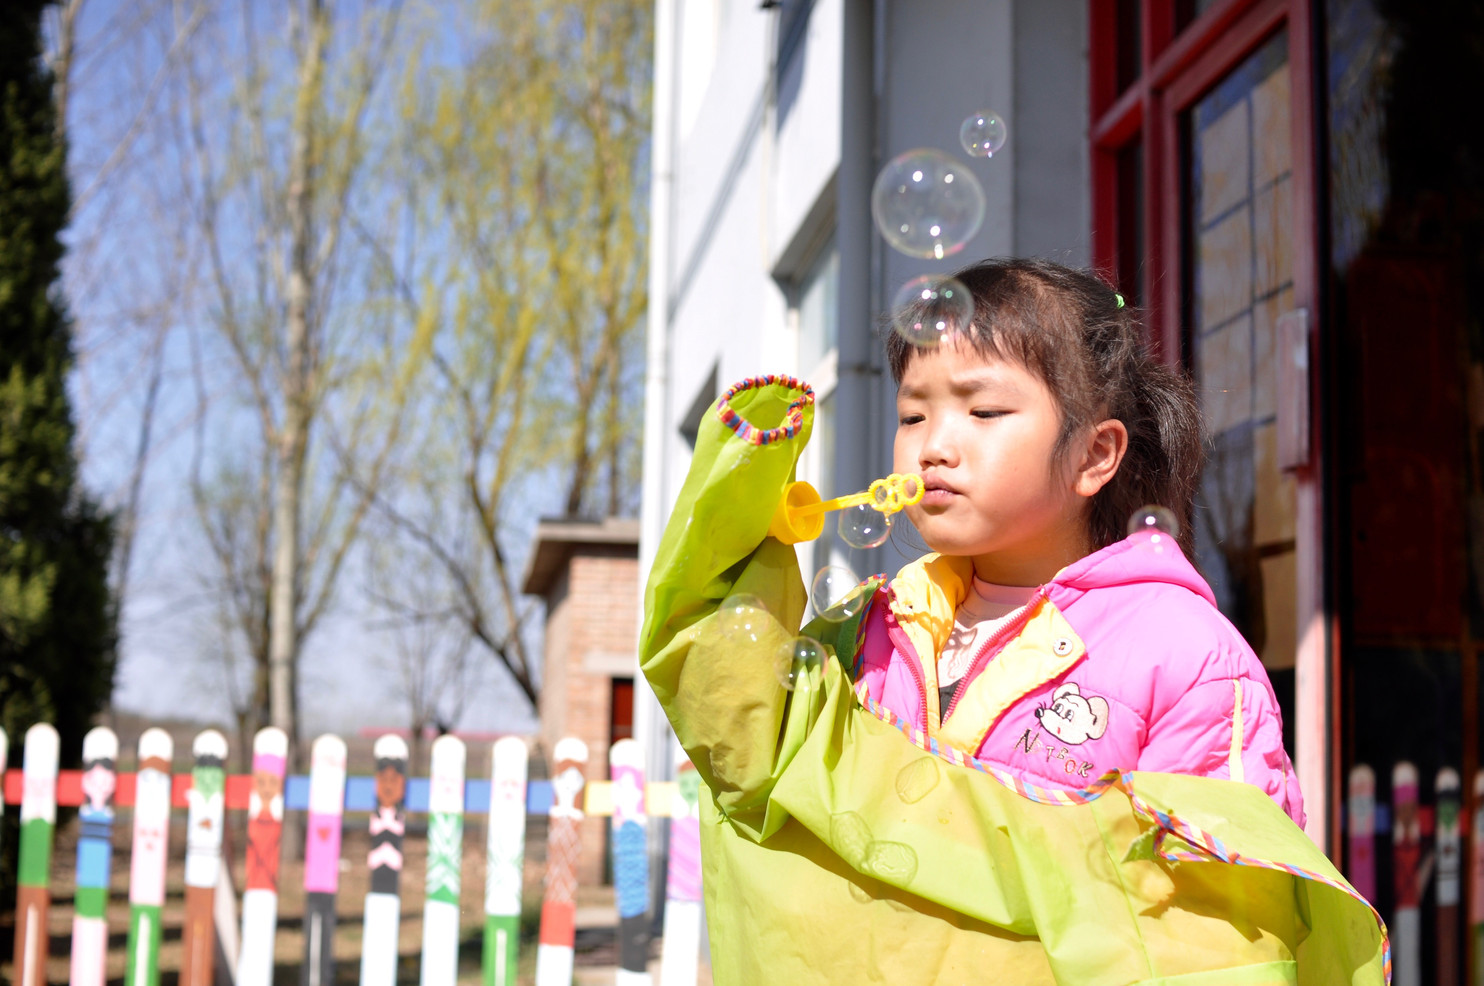 4 year old Si Chun blows bubbles during play time.